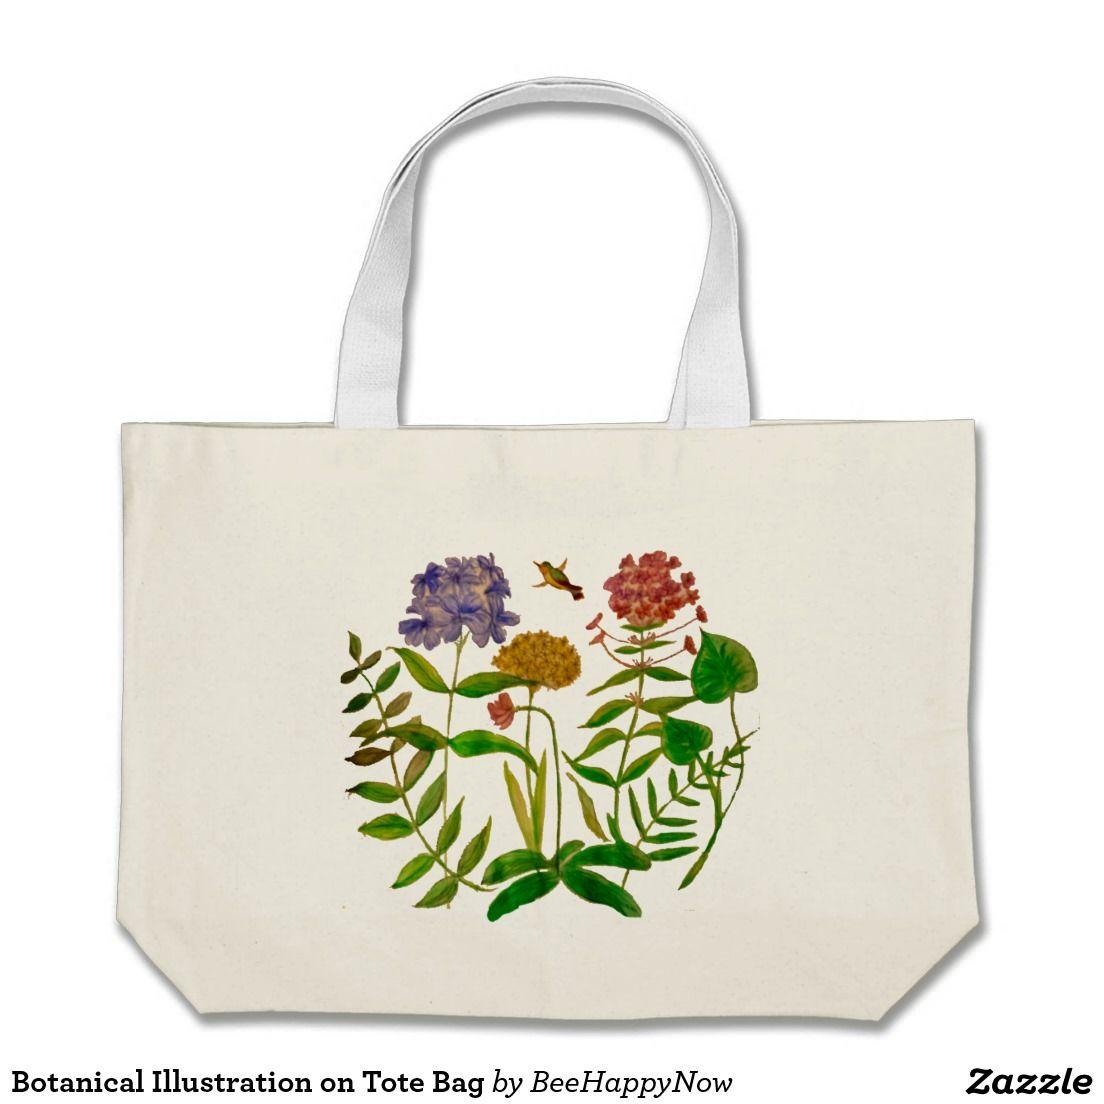 On Totes Tote BagBags Illustration Botanical And m0OvyN8wPn